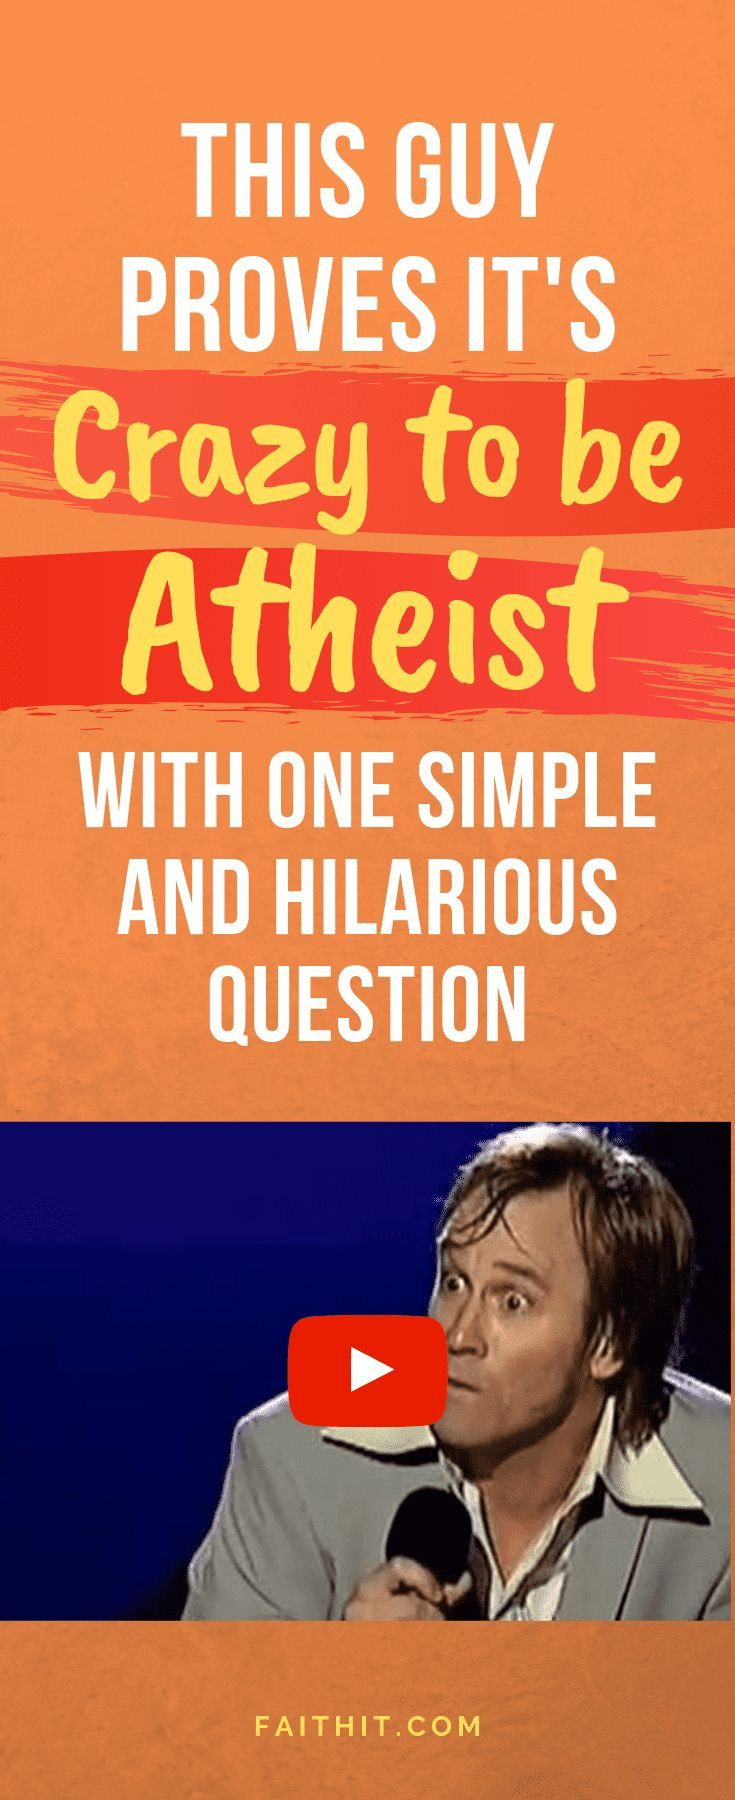 Christian comedian Brad Stine pokes fun at one of the most widely heard defenses against belief in God... and totally kills it! #Christian #belief #beliefinGod #Christians #comedian #atheist #Jesus #JesusChrist